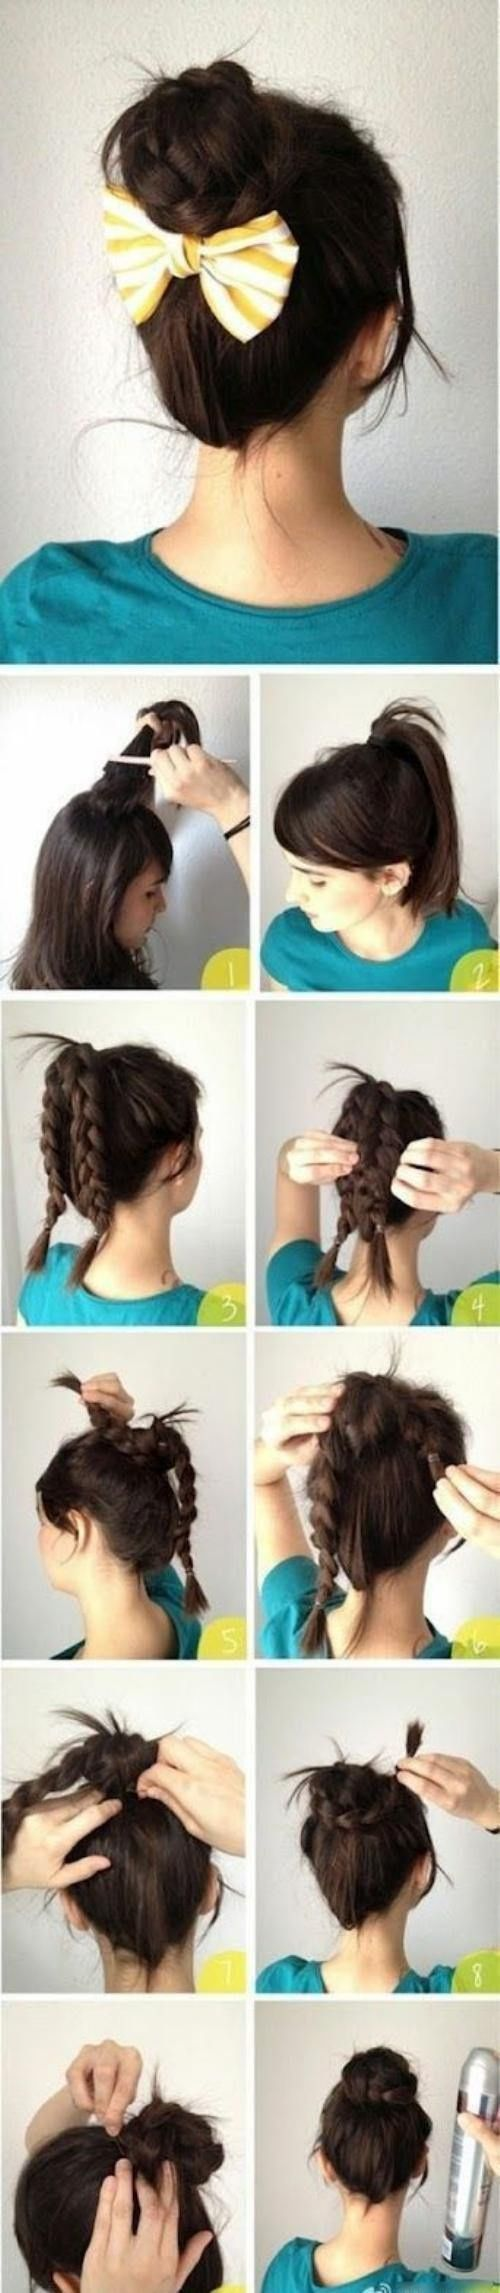 40 best hairstyles for work stylist toronto shares quick hair tips 25 ways to style beautiful summer hairstyles braided bun tutorialshairstyle tutorialshairstyle ideaseasy hairstyles thin hairbraided solutioingenieria Images